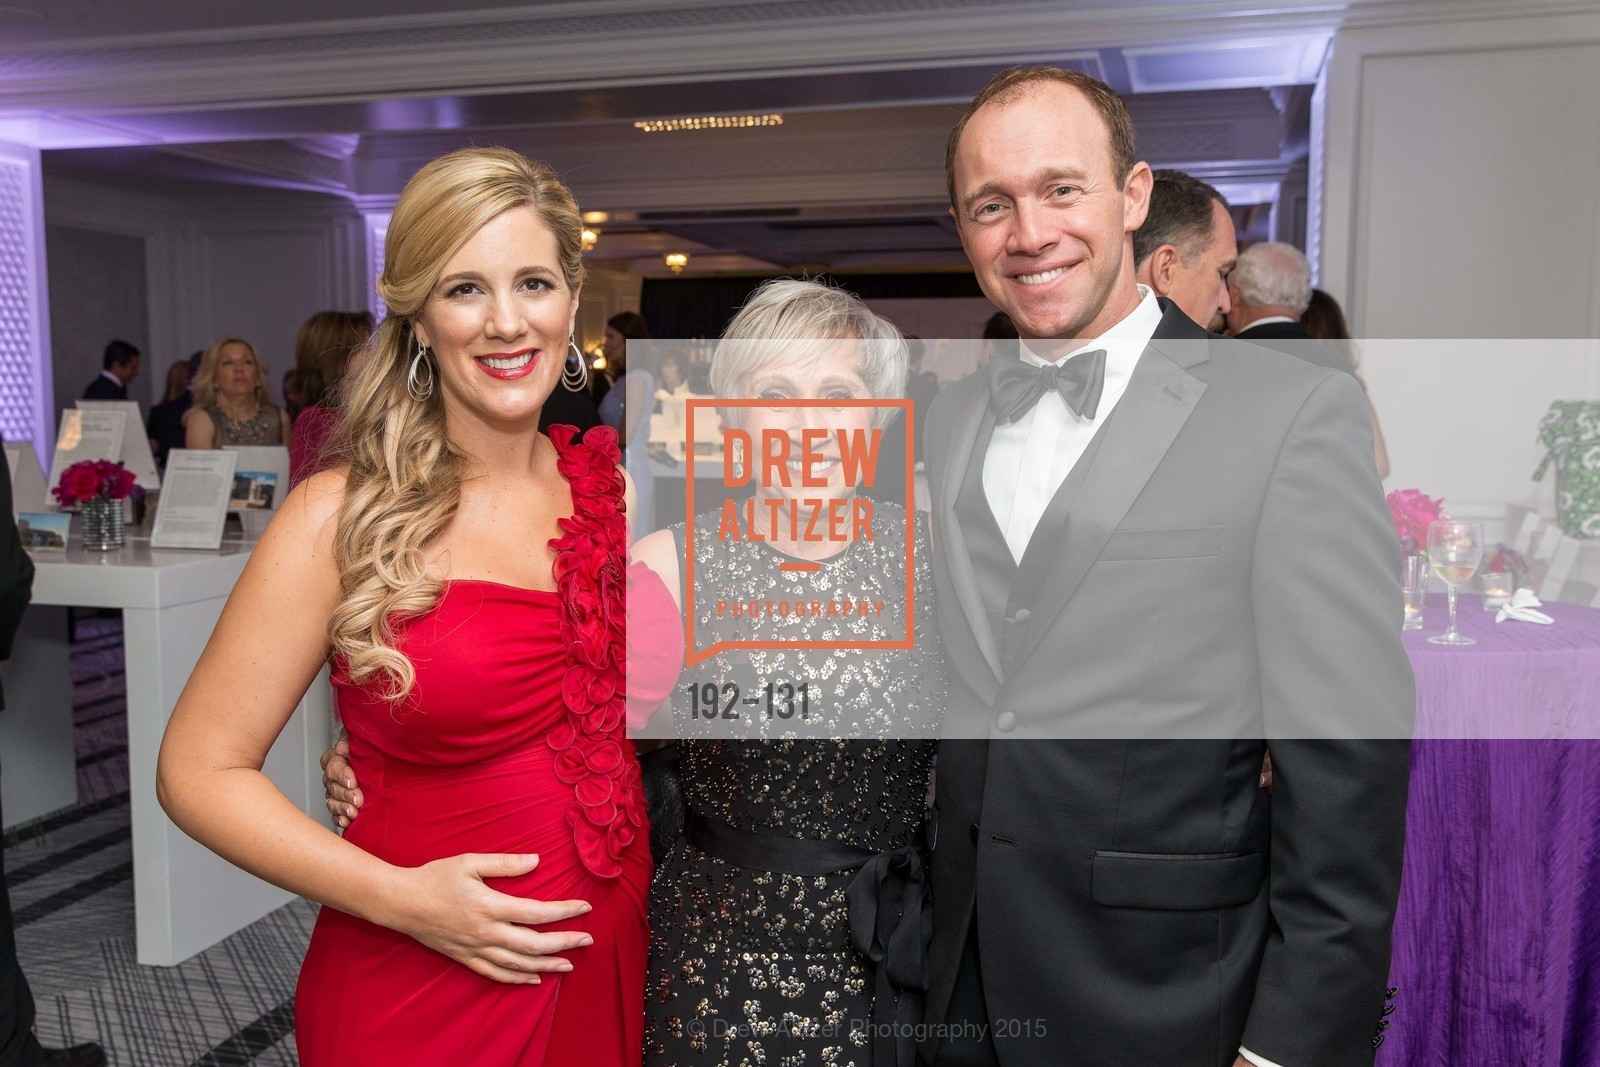 Lauren Sagan, Pam Sagan, Trevor Sagan, JUVENILE DIABETES RESEARCH FOUNDATION  Hope Gala, The Ritz-Carlton, May 29th, 2015,Drew Altizer, Drew Altizer Photography, full-service event agency, private events, San Francisco photographer, photographer California